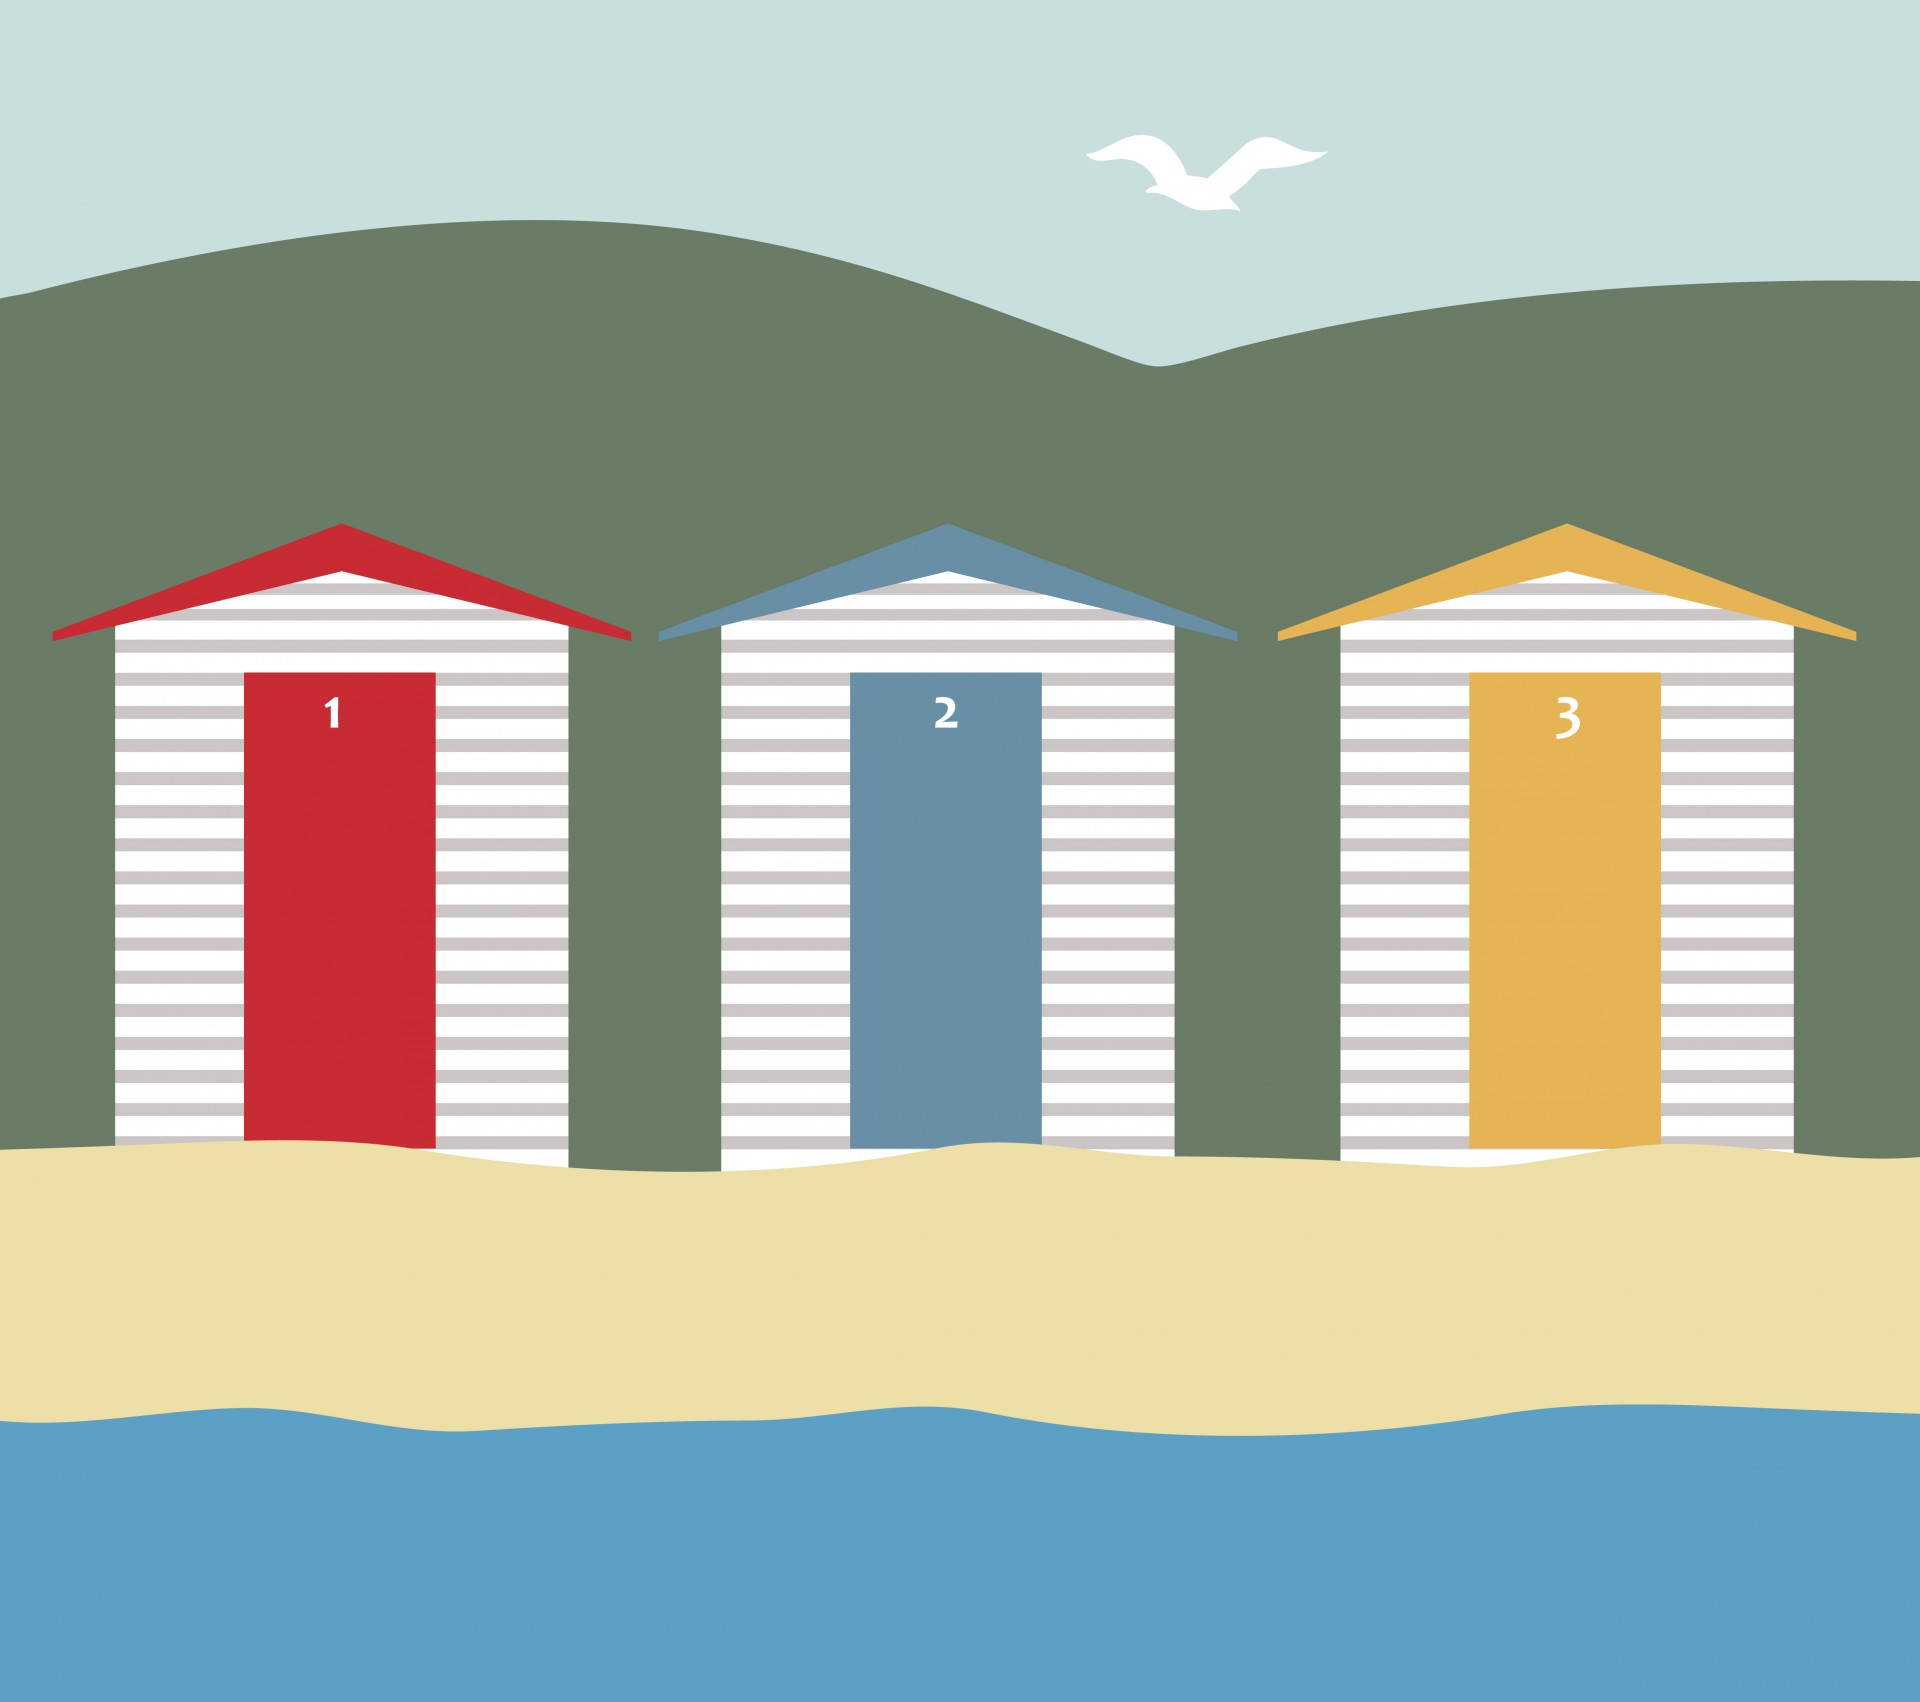 Beach hut animated clipart png royalty free library Beach Hut Cliparts - Cliparts Zone png royalty free library